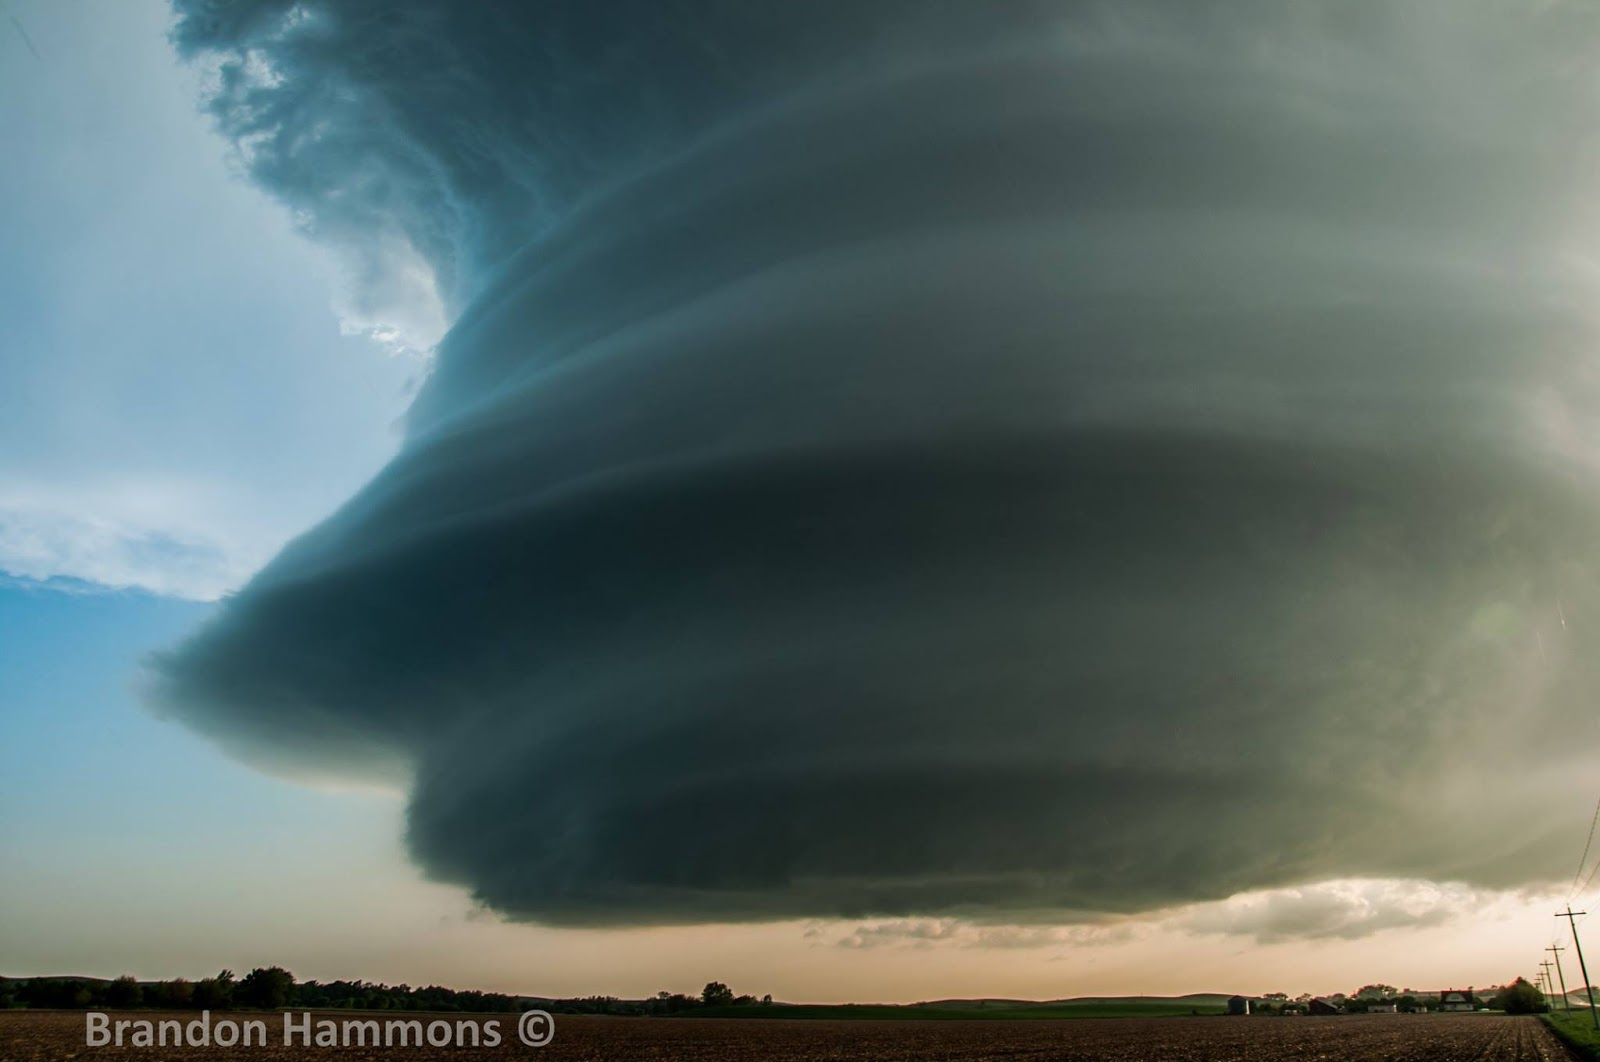 most incredible storm, mothership